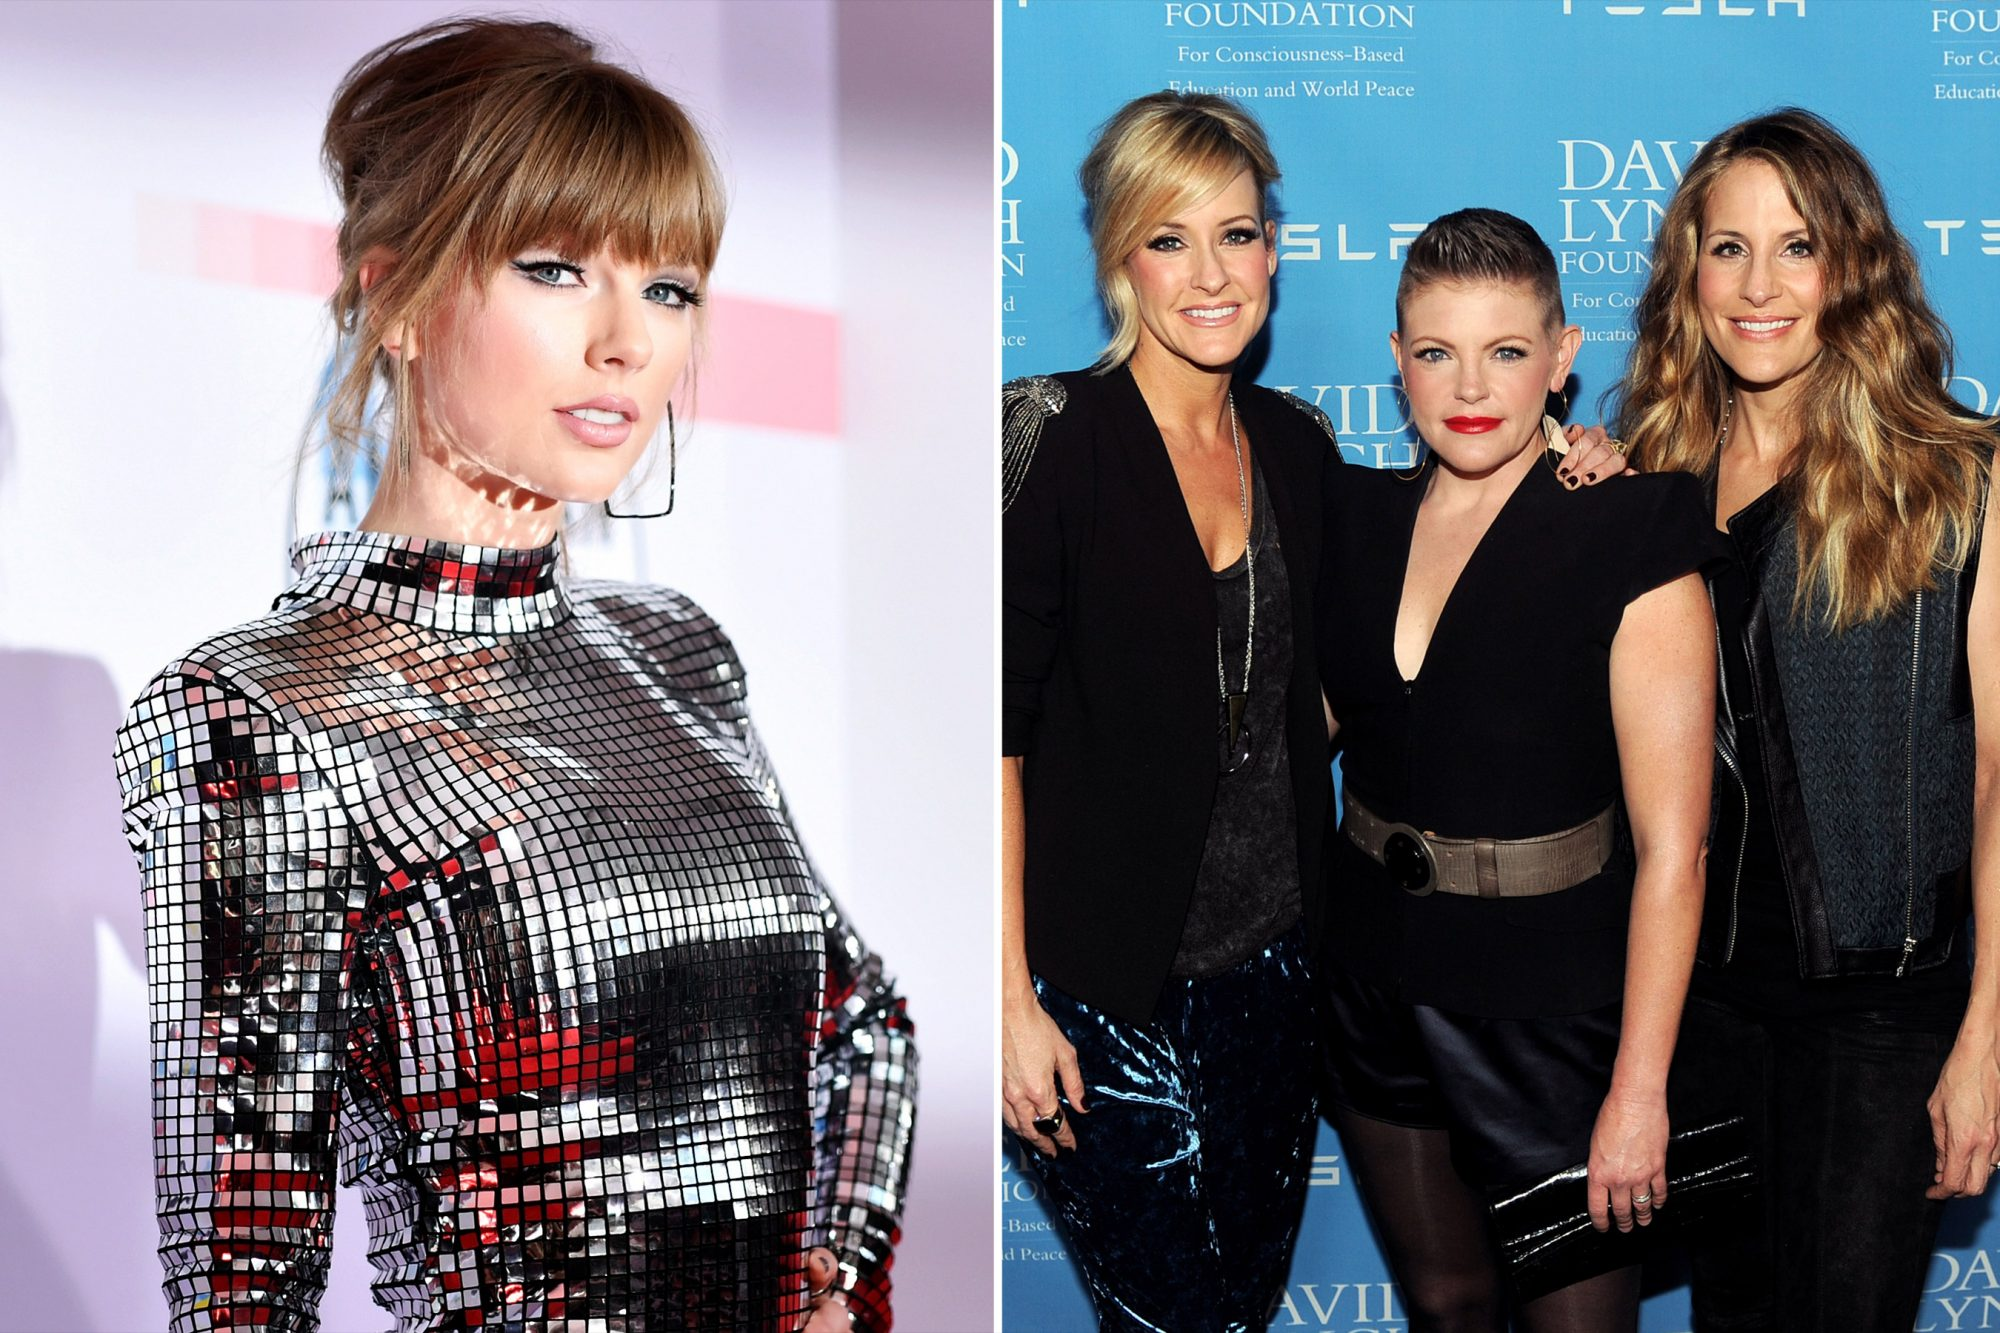 Taylor Swift, Dixie Chicks